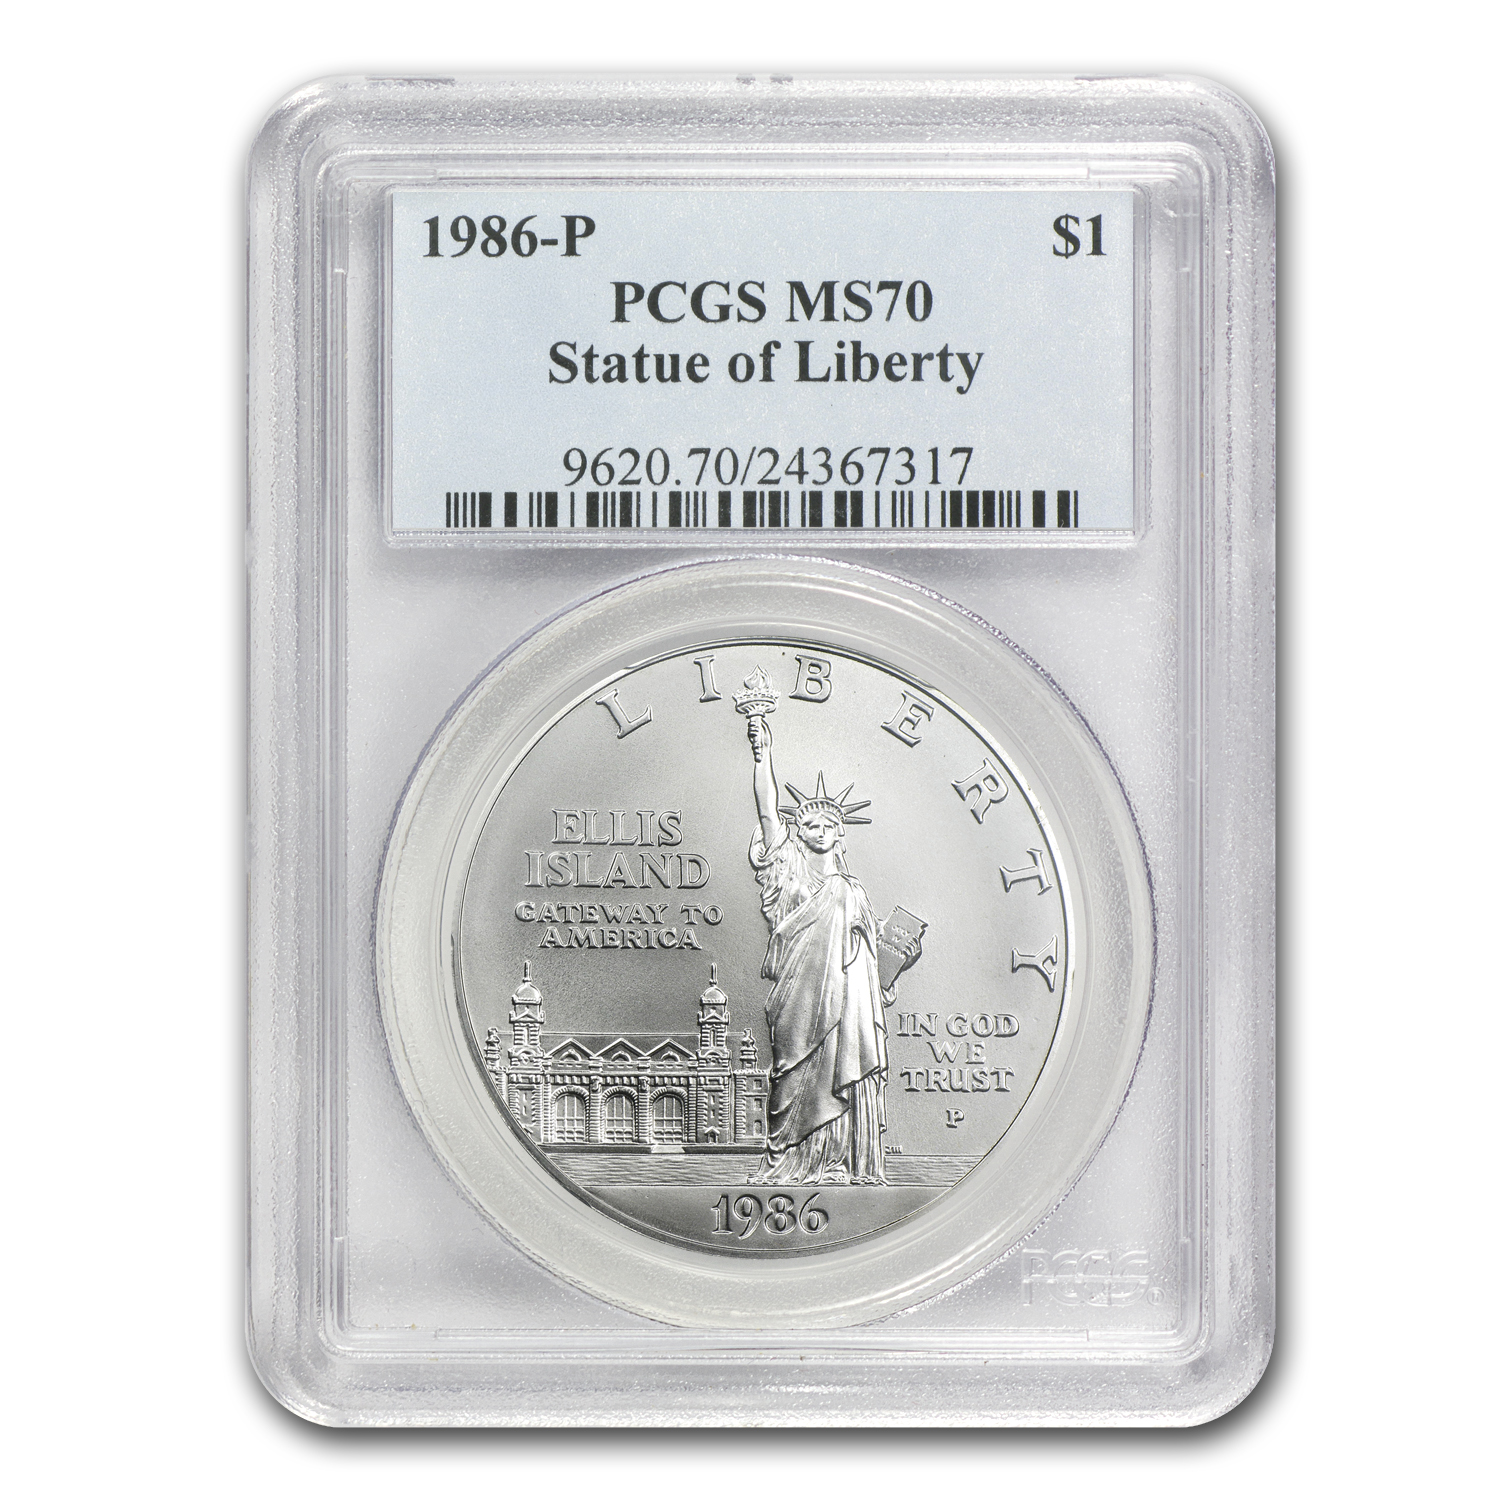 1986-P Statue of Liberty $1 Silver Commemorative MS-70 PCGS